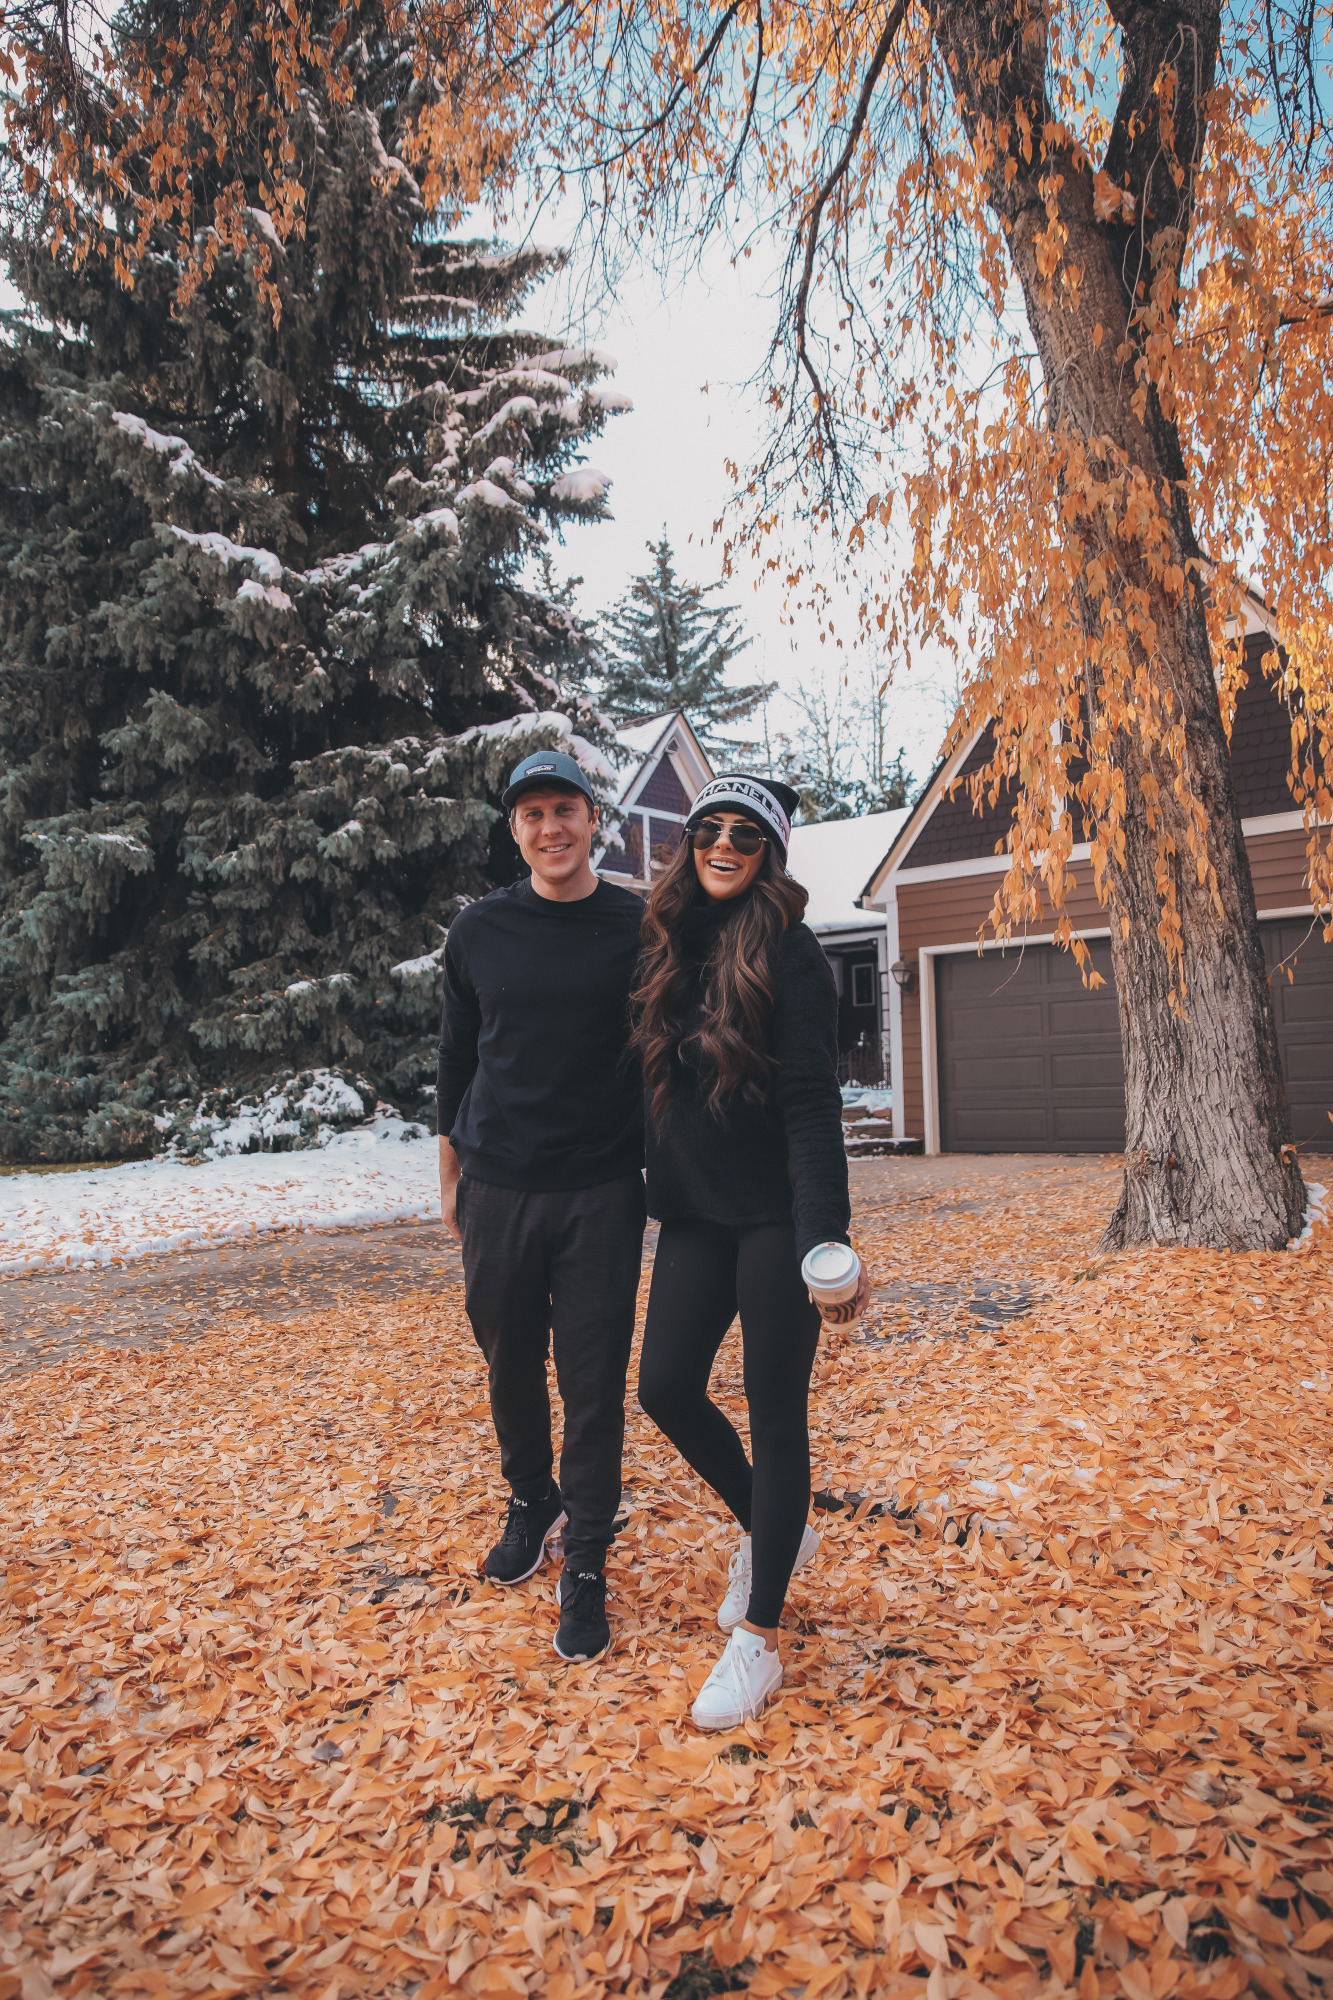 zella nordstrom review, emily gemma, le spec aviators, chanel beanie 2020 | Athleisure Wear by popular US fashion blog, The Sweetest Thing: image of a husband wearing a Logo Baseball Cap PATAGONIA, Pyrite Slim Fit Joggers ZELLA, and Crewneck Fleece Sweatshirt ZELLA, and a wife wearing a Furry Fleece Funnel Neck Pullover ZELLA, Booty Boost Active 7/8 Leggings SPANX,Charlie Platform Sneaker STEVE MADDEN,Panarea 60mm Aviator Sunglasses LE SPECS, and Lip Cheat Lip Liner CHARLOTTE TILBURY and standing together outside on a leaf covered driveway.